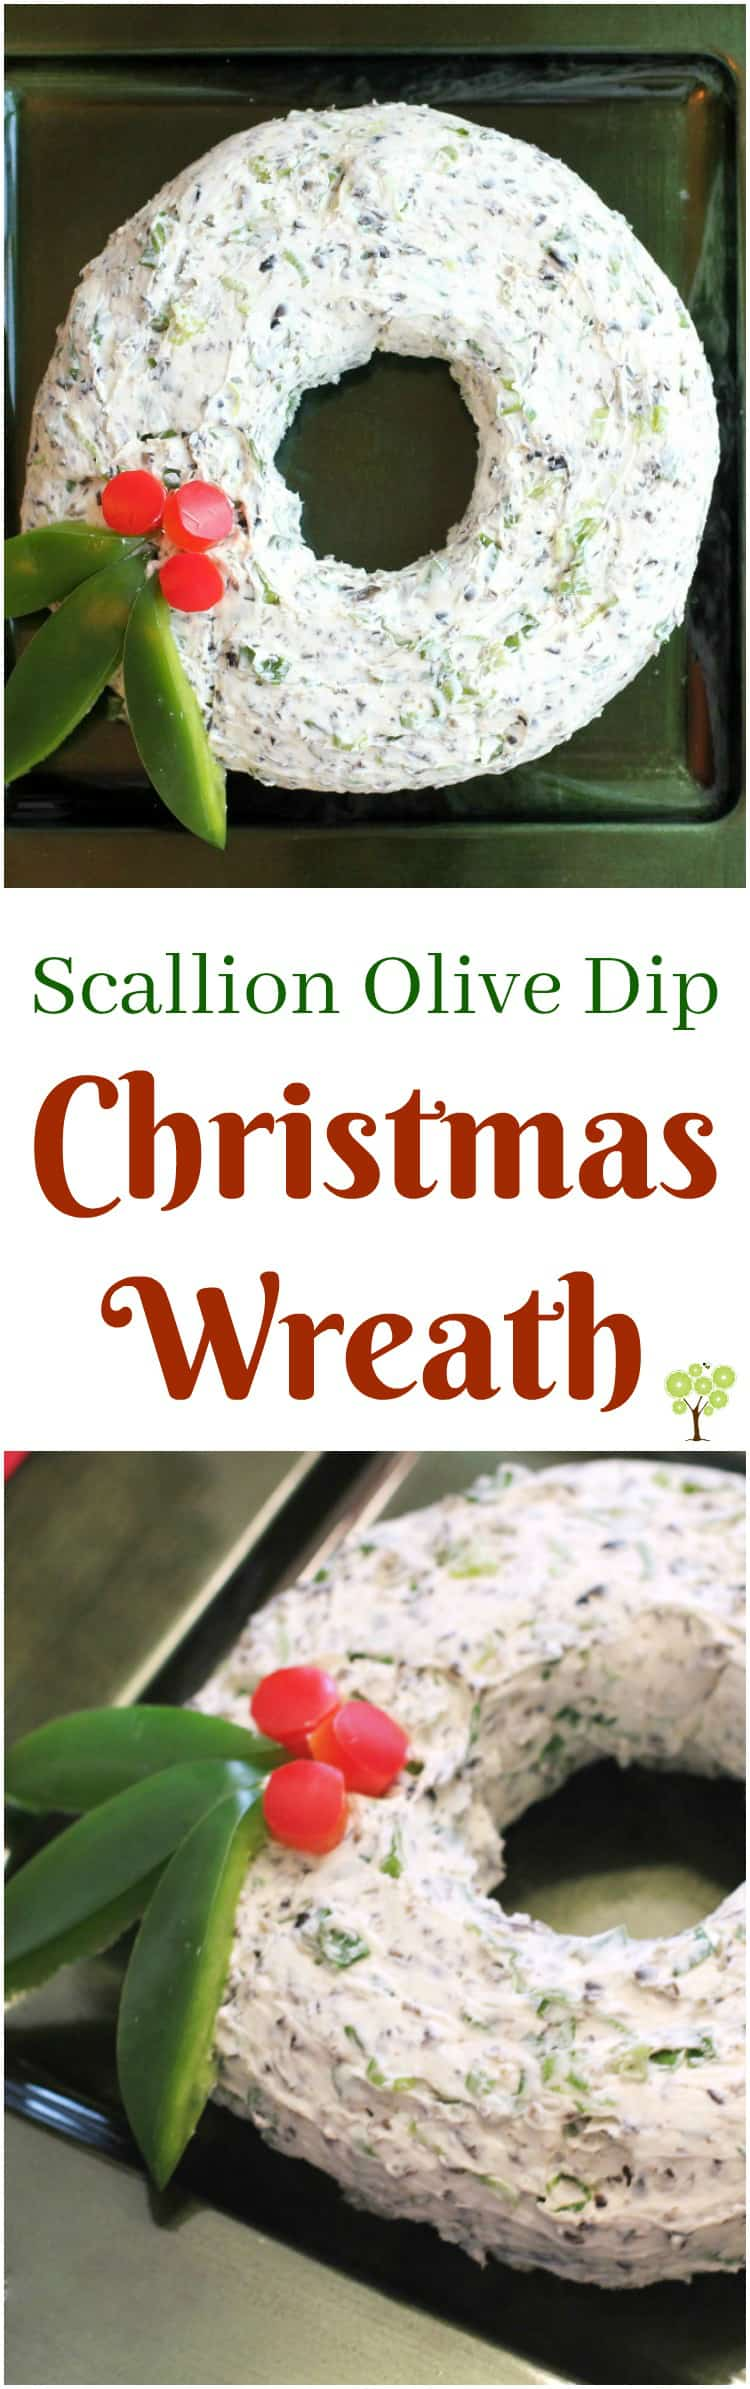 Scallion Olive Dip http://wp.me/p4qC4h-58